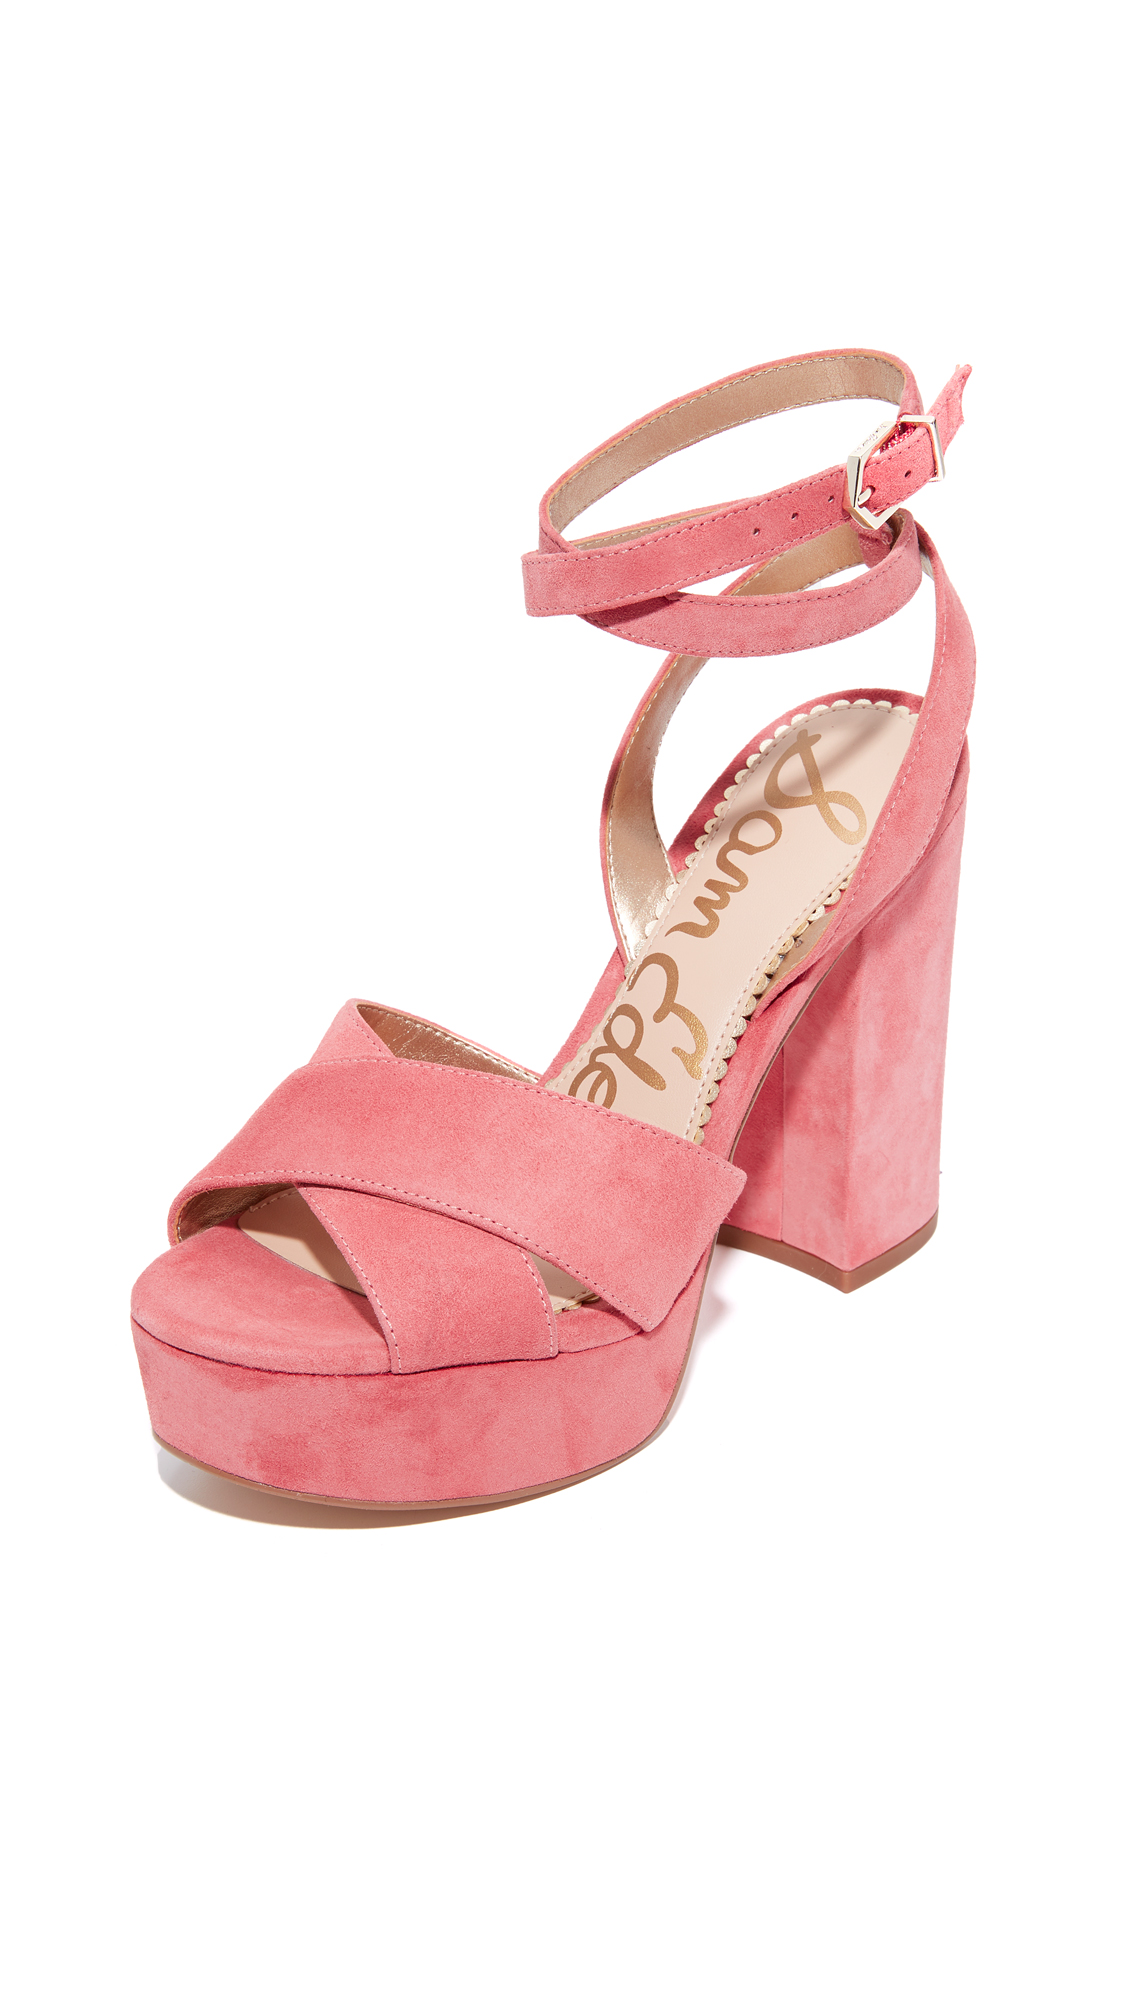 Sam Edelman Mara Platform Sandals - Washed Coral